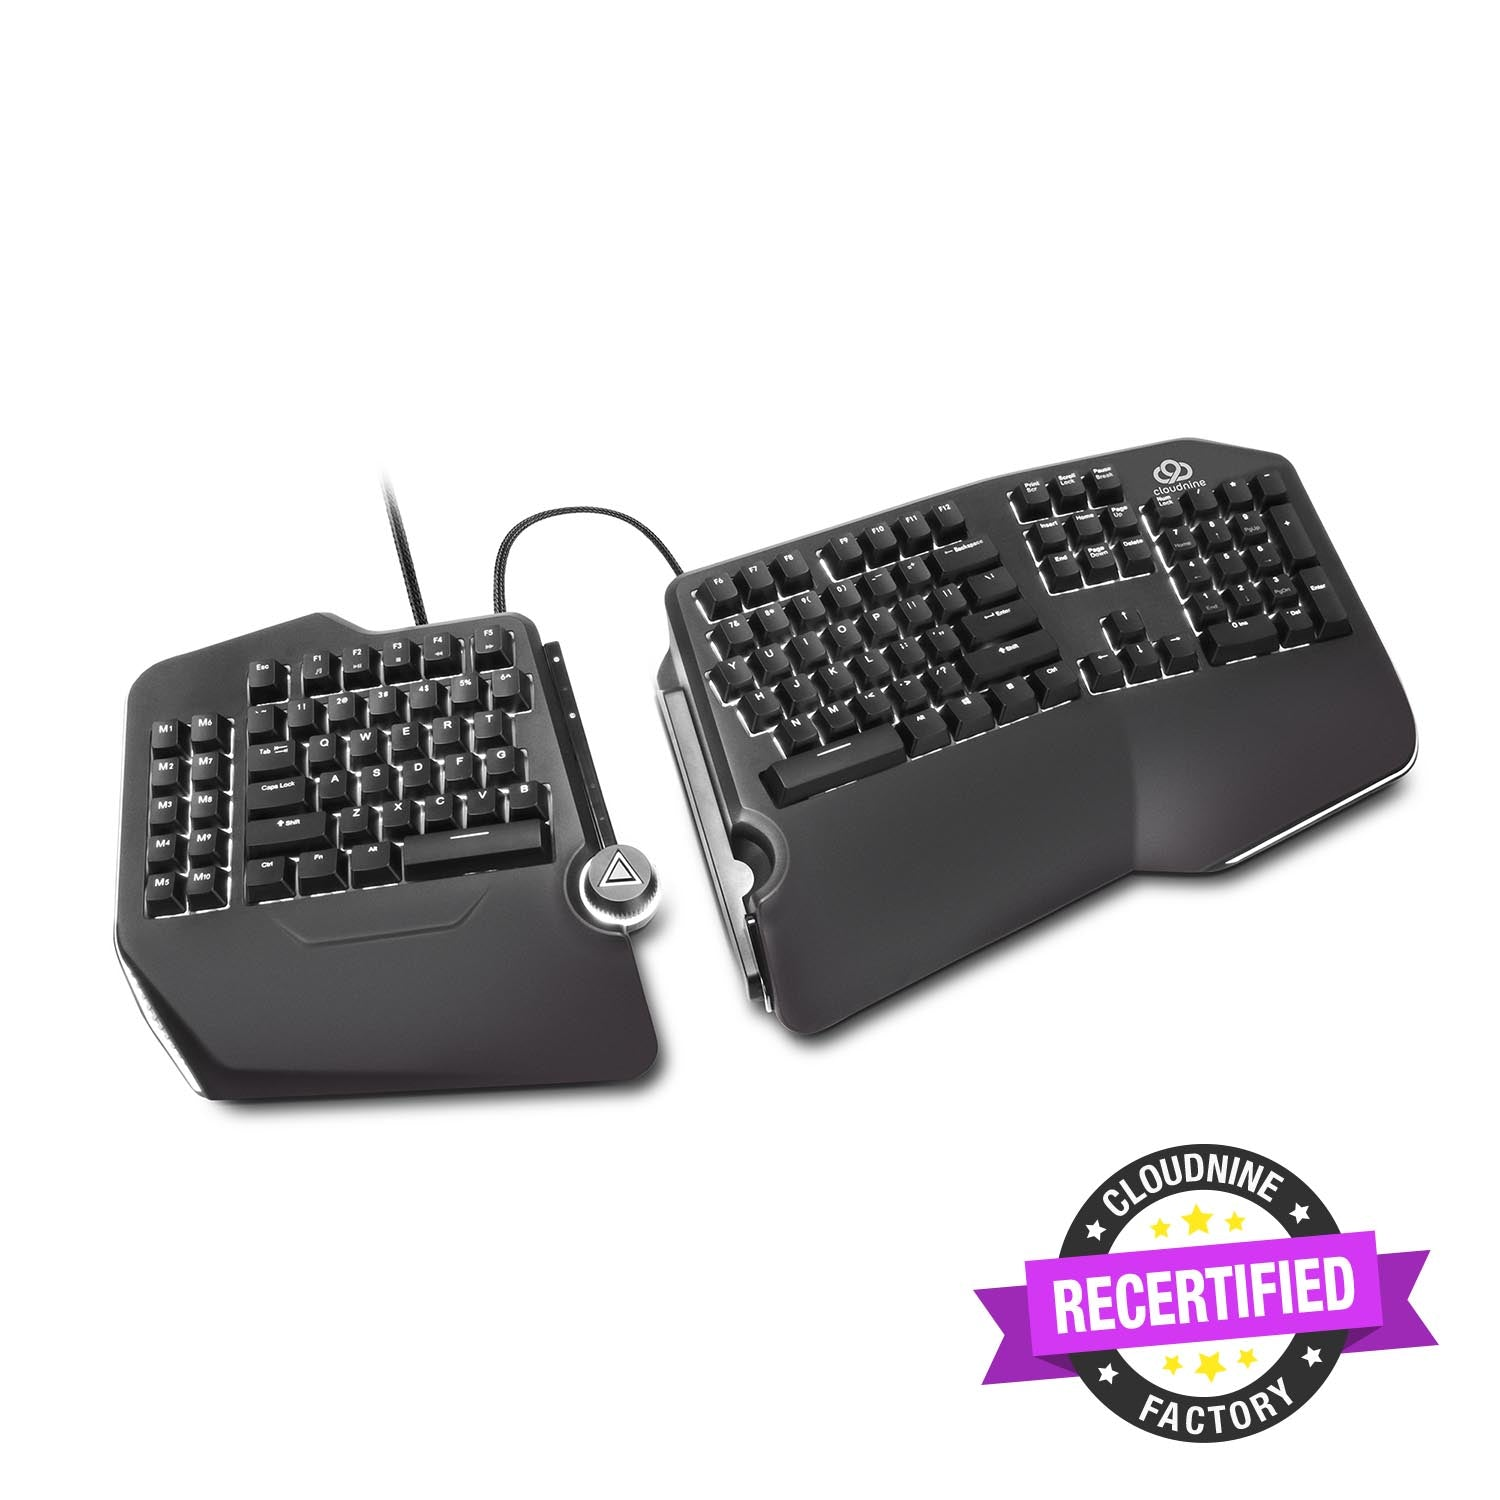 Cloud Nine C989 ErgoFS Ergonomic Mechanical Split-Keyboard (FACTORY-RECERTIFIED)